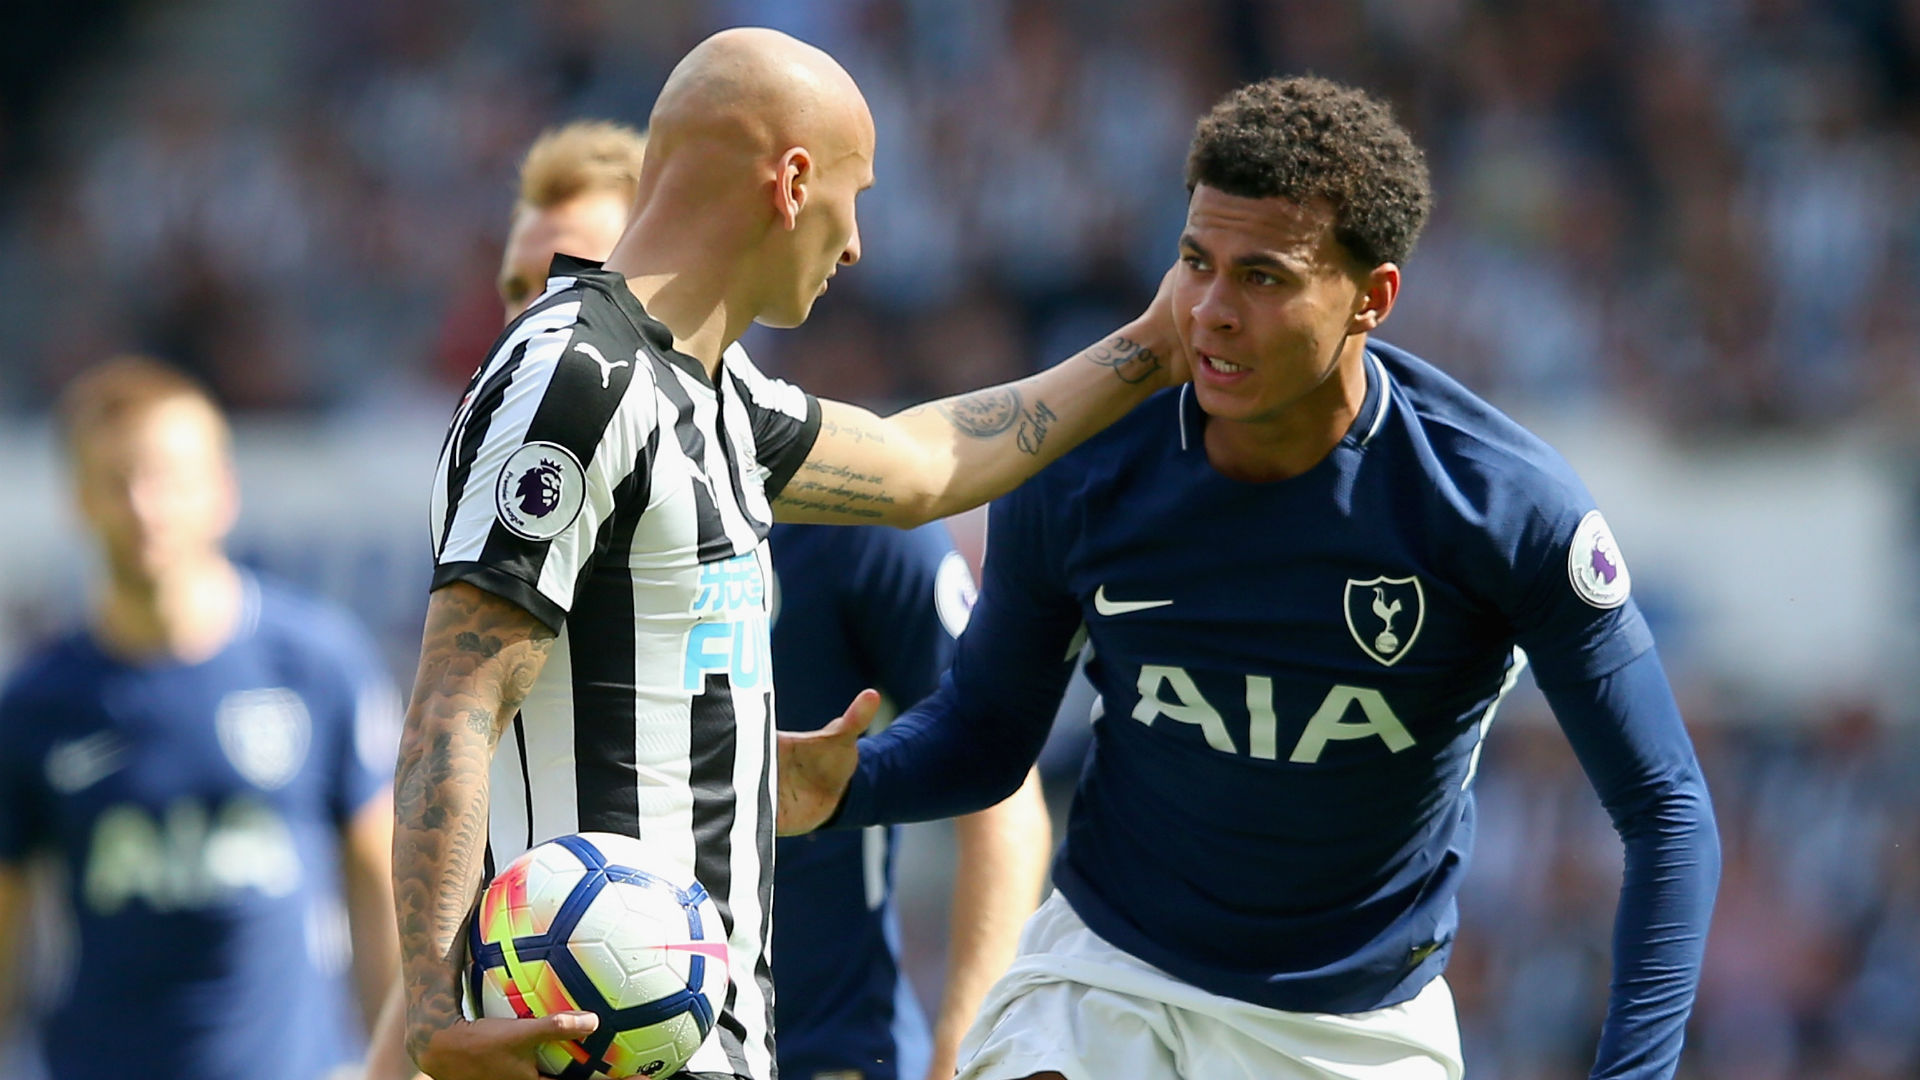 Tottenham capitalizes on Shelvey red, beats Newcastle 2-0